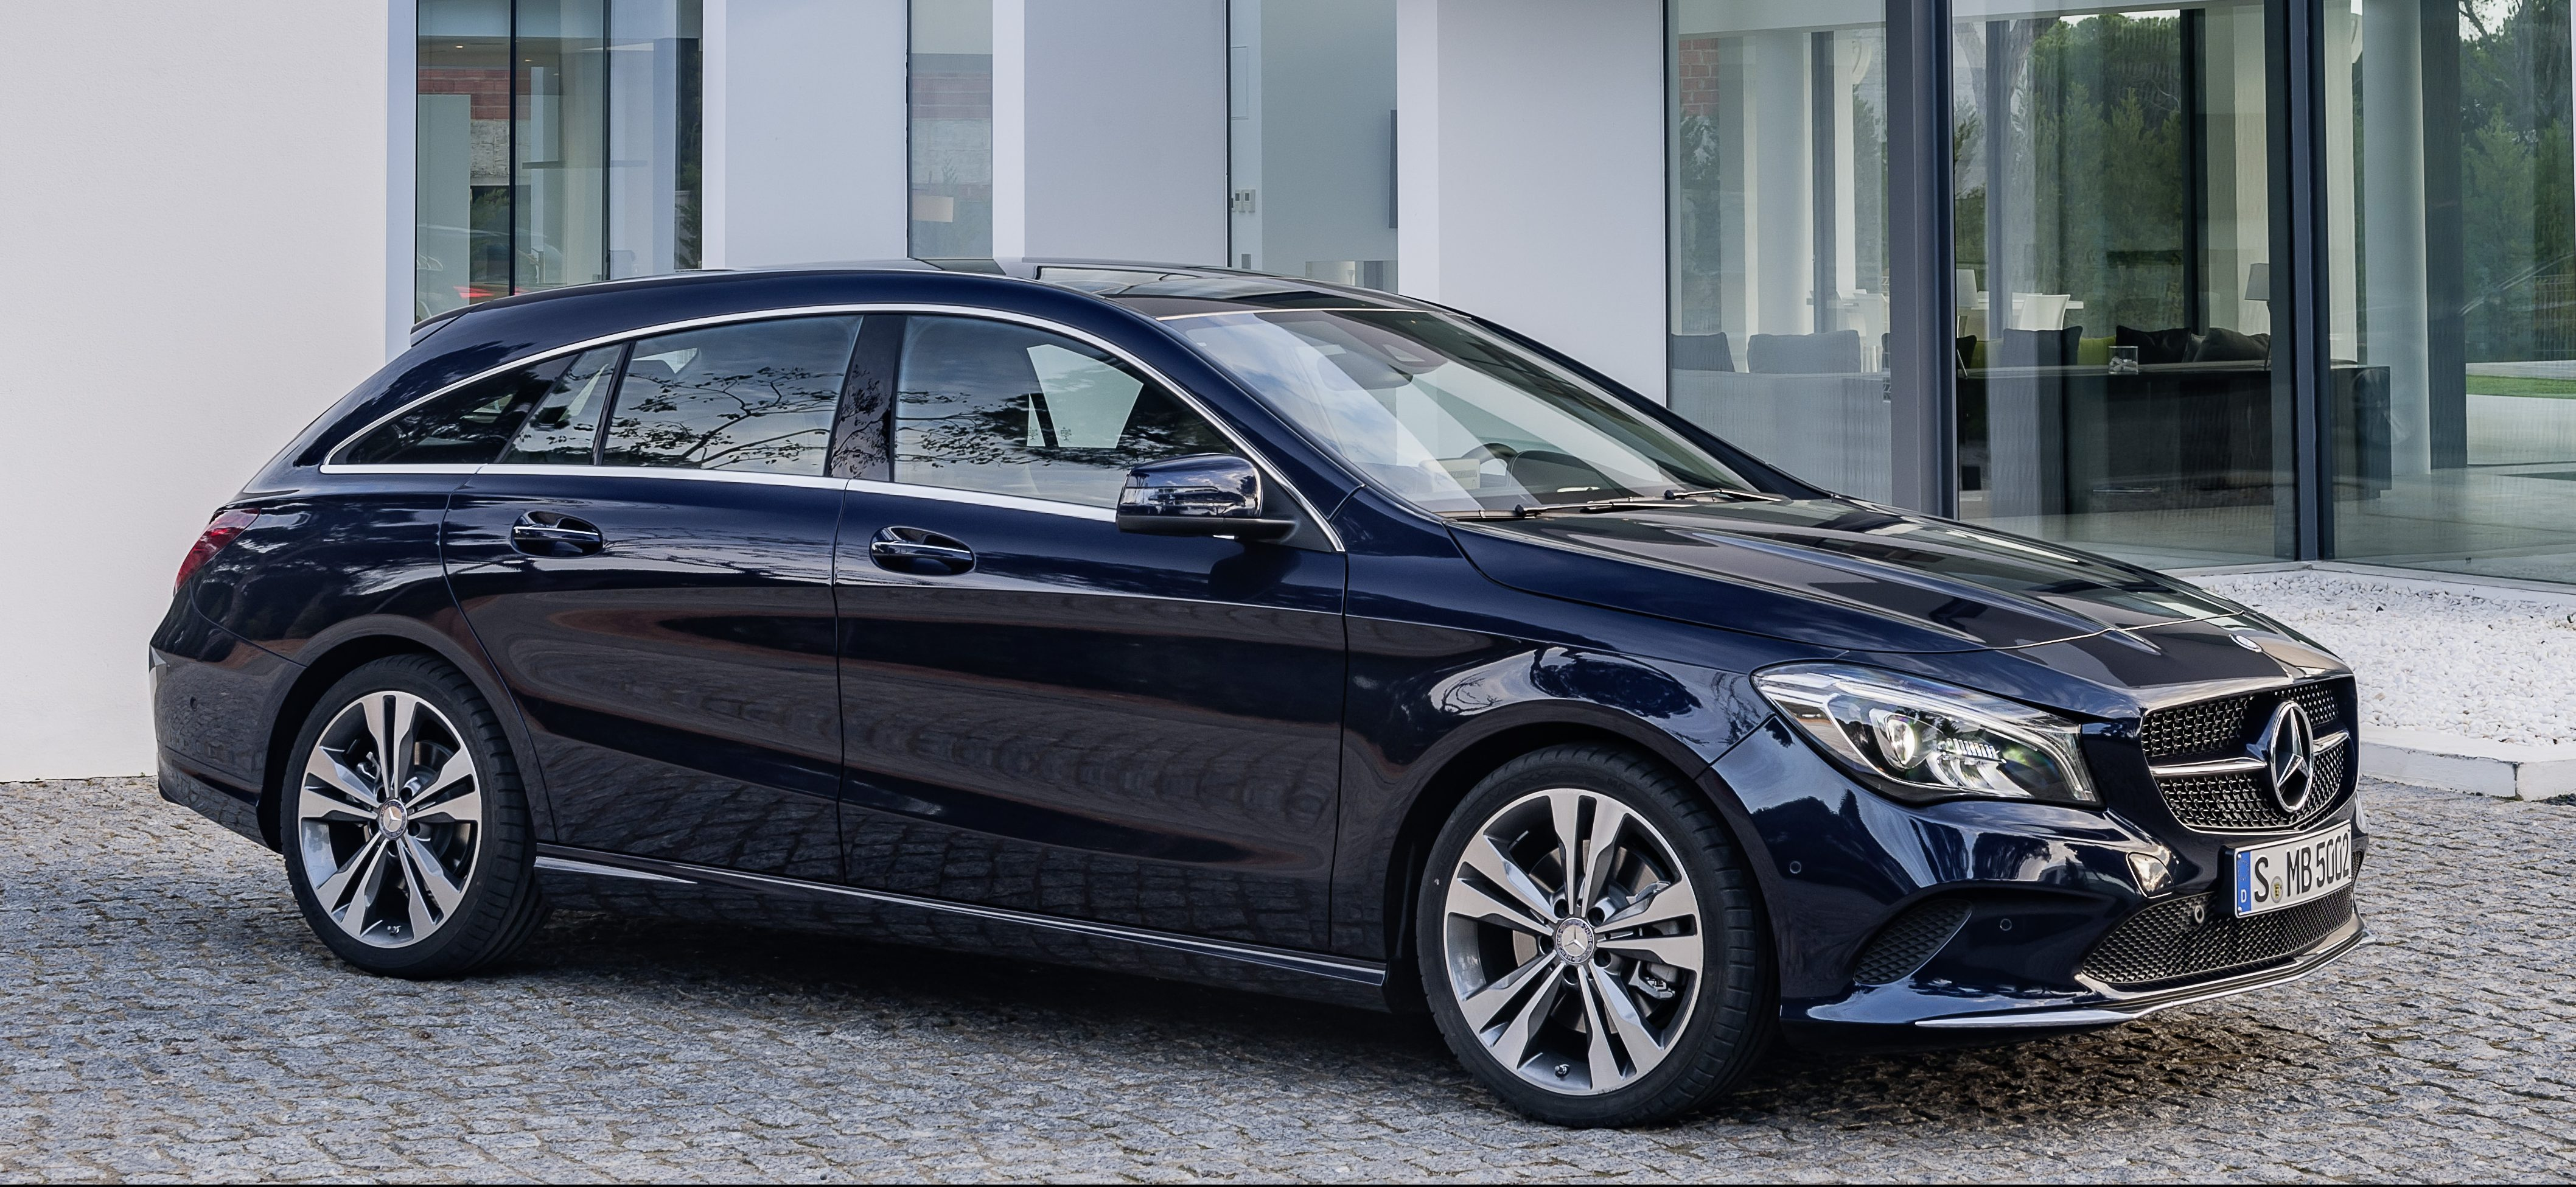 Second Mercedes Benz Plant To Be Built In Hungary